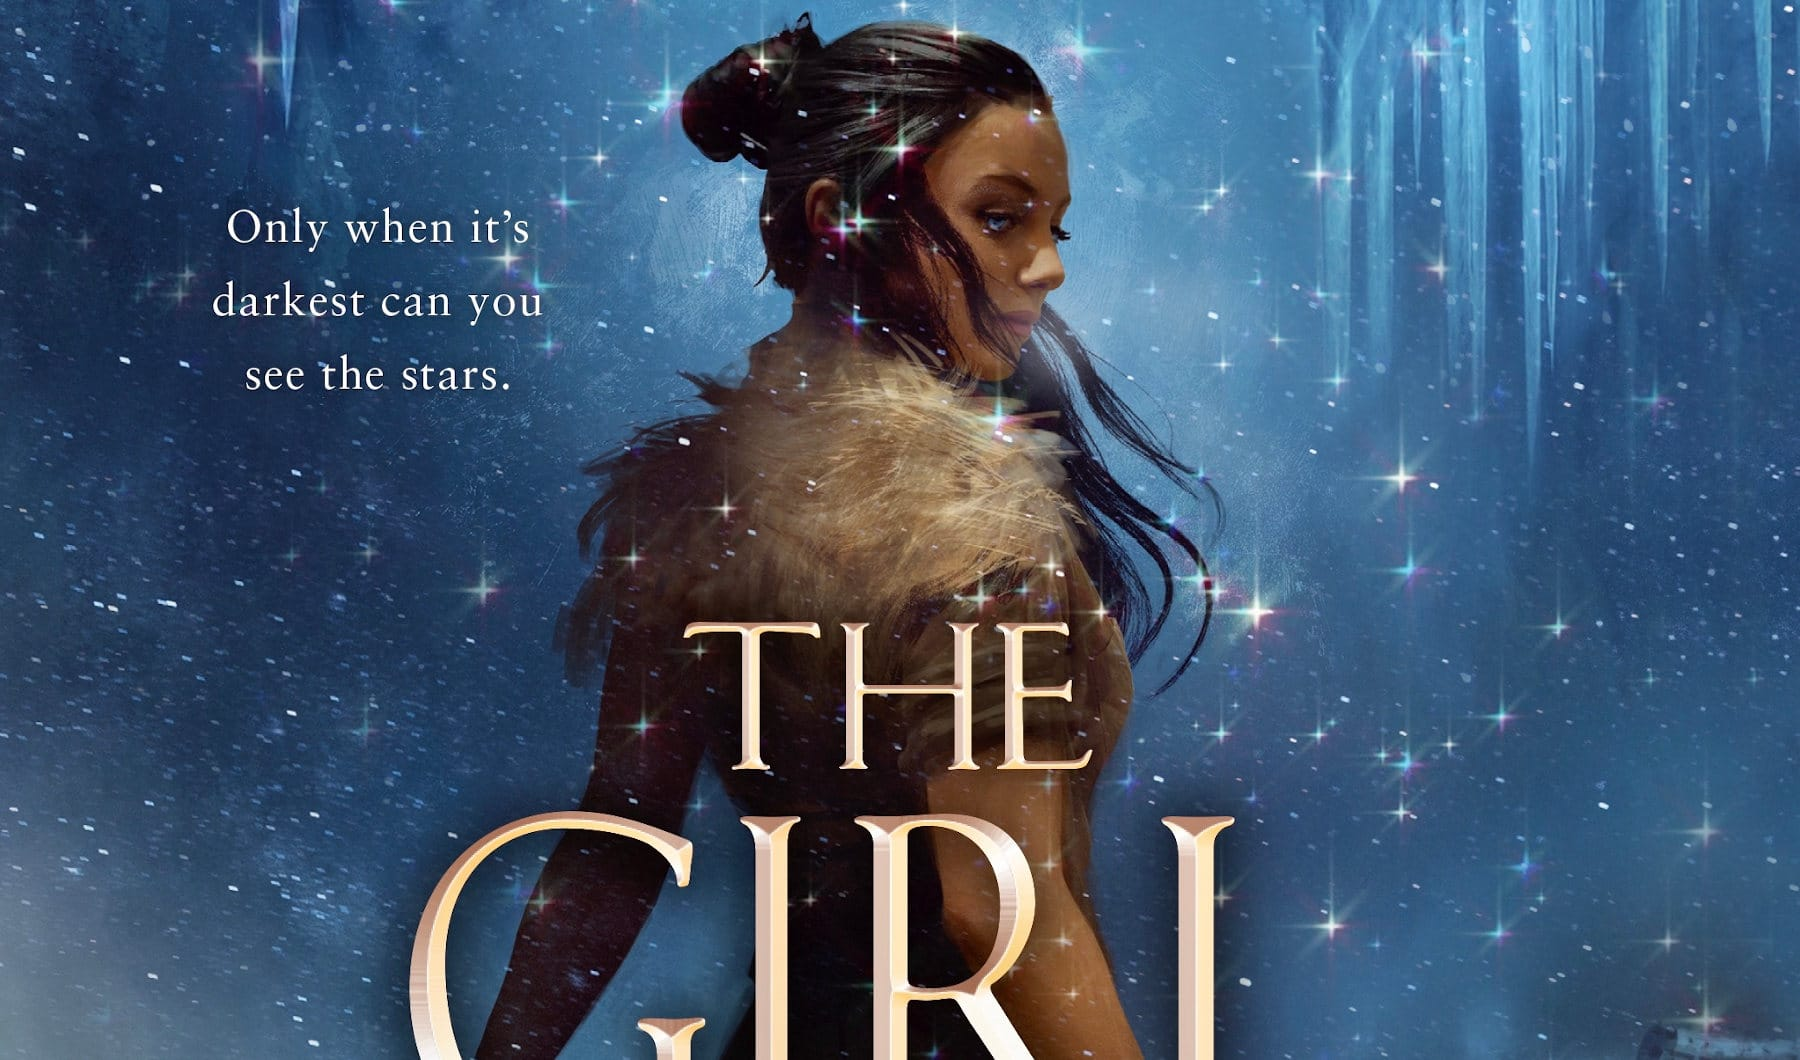 The Girl and the Stars von Mark Lawrence erscheint Ende April 2020